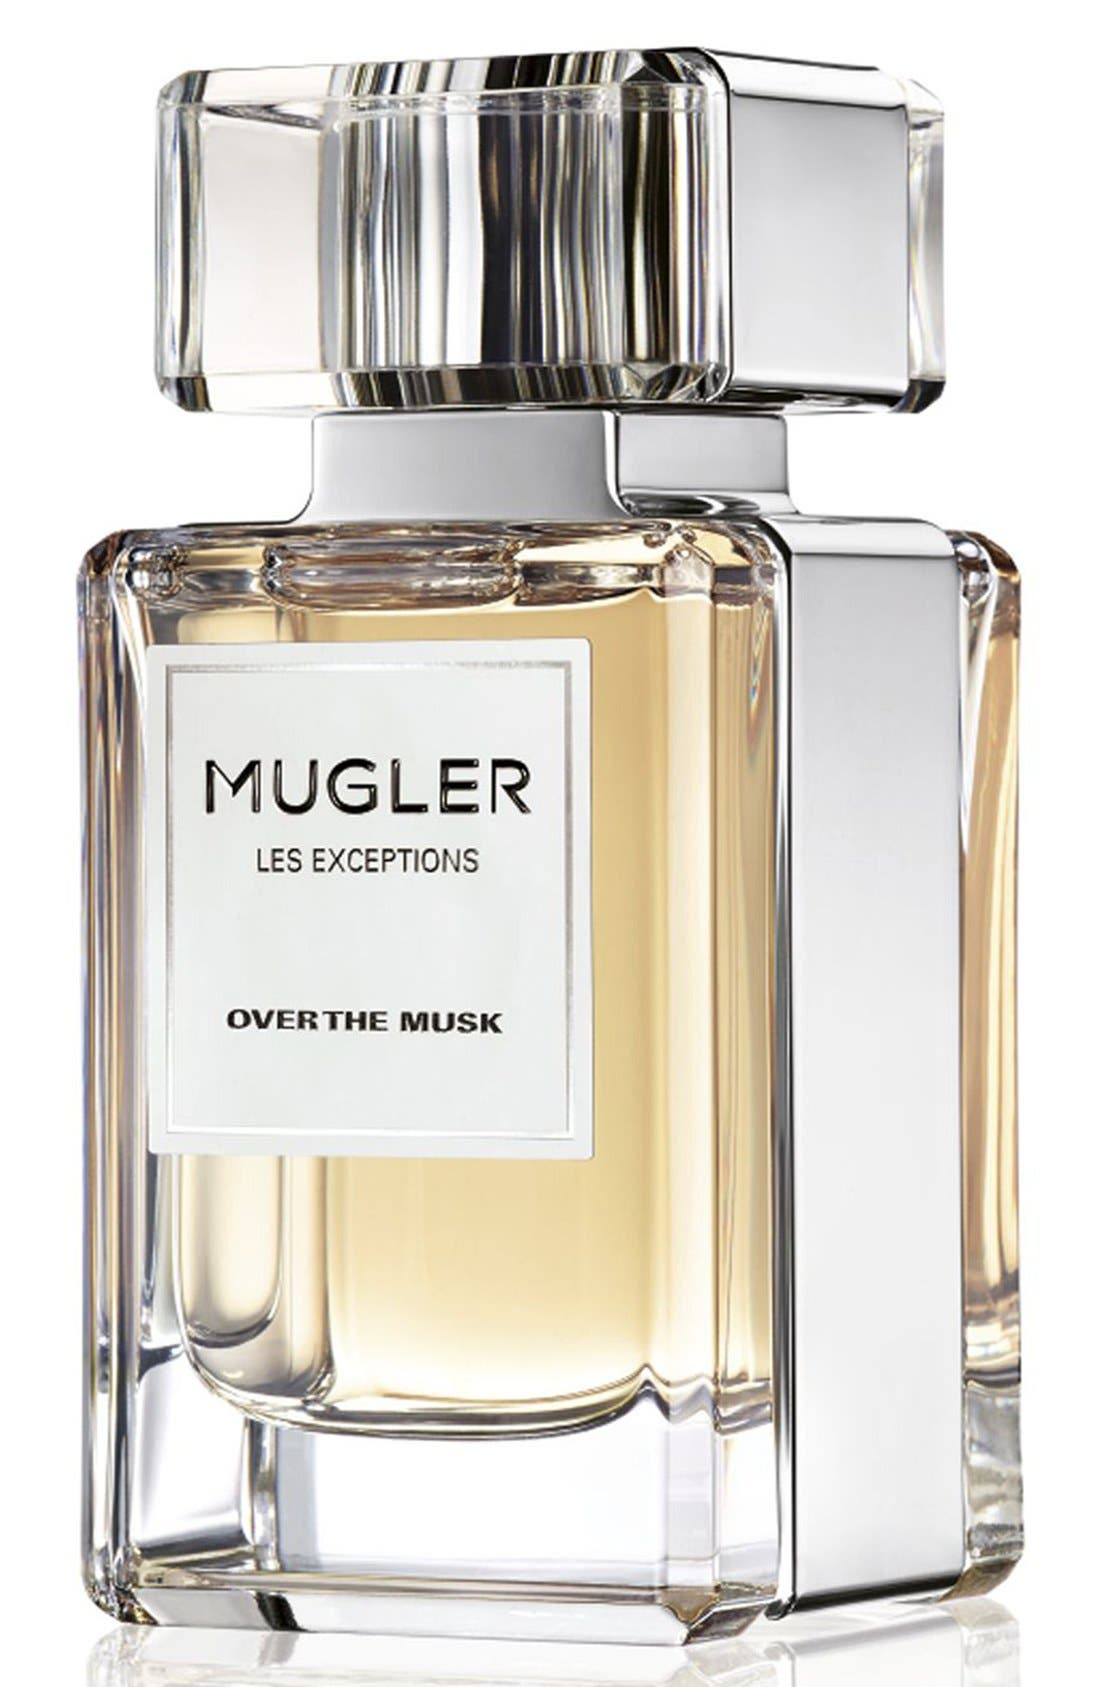 Mugler 'Les Exceptions - Over the Musk' Fragrance